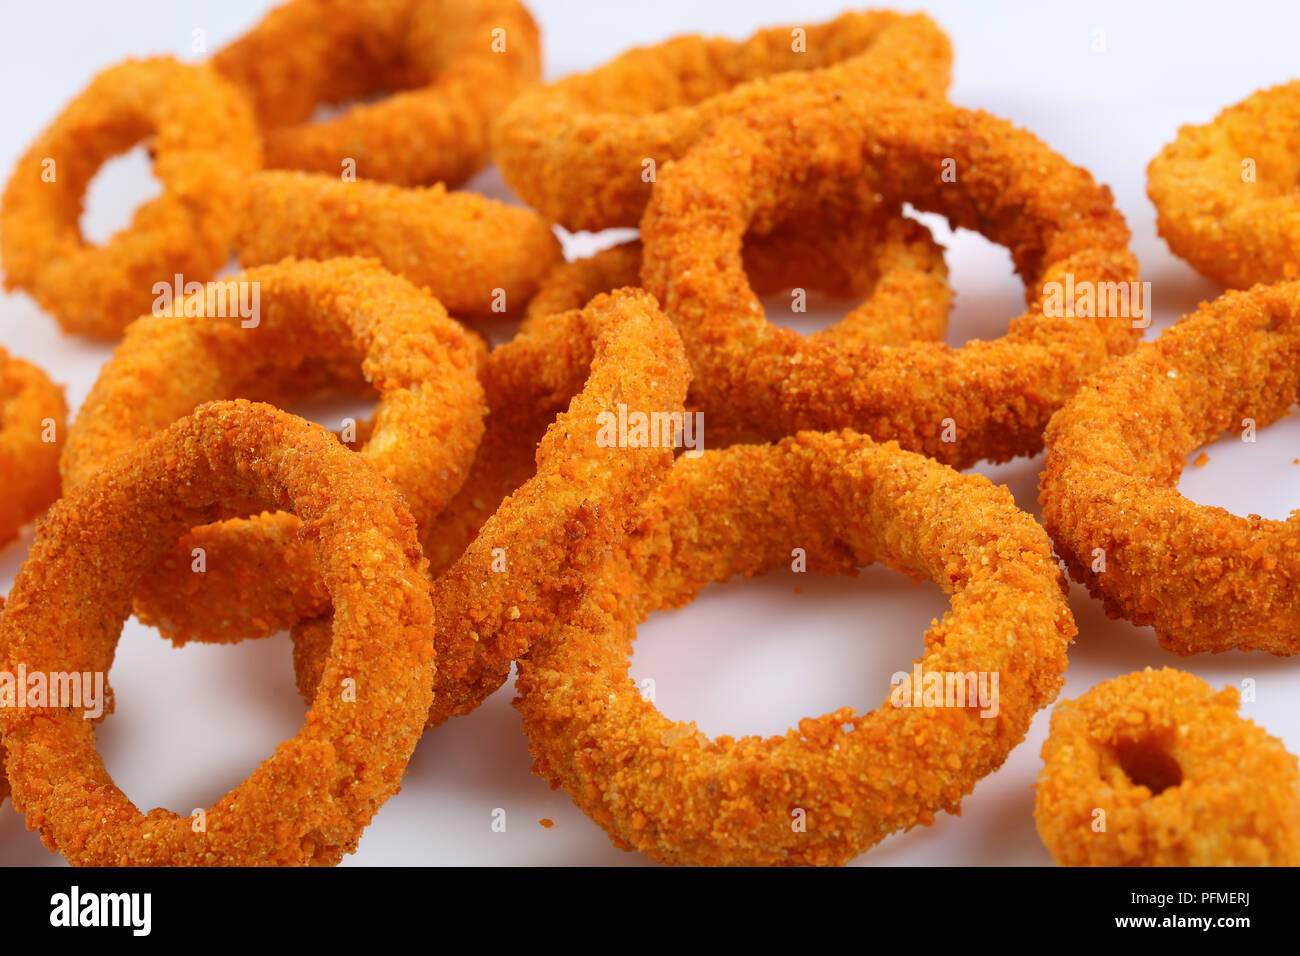 close-up of delicious golden breaded and deep fried crispy onion rings on white plate, view from above - Stock Image